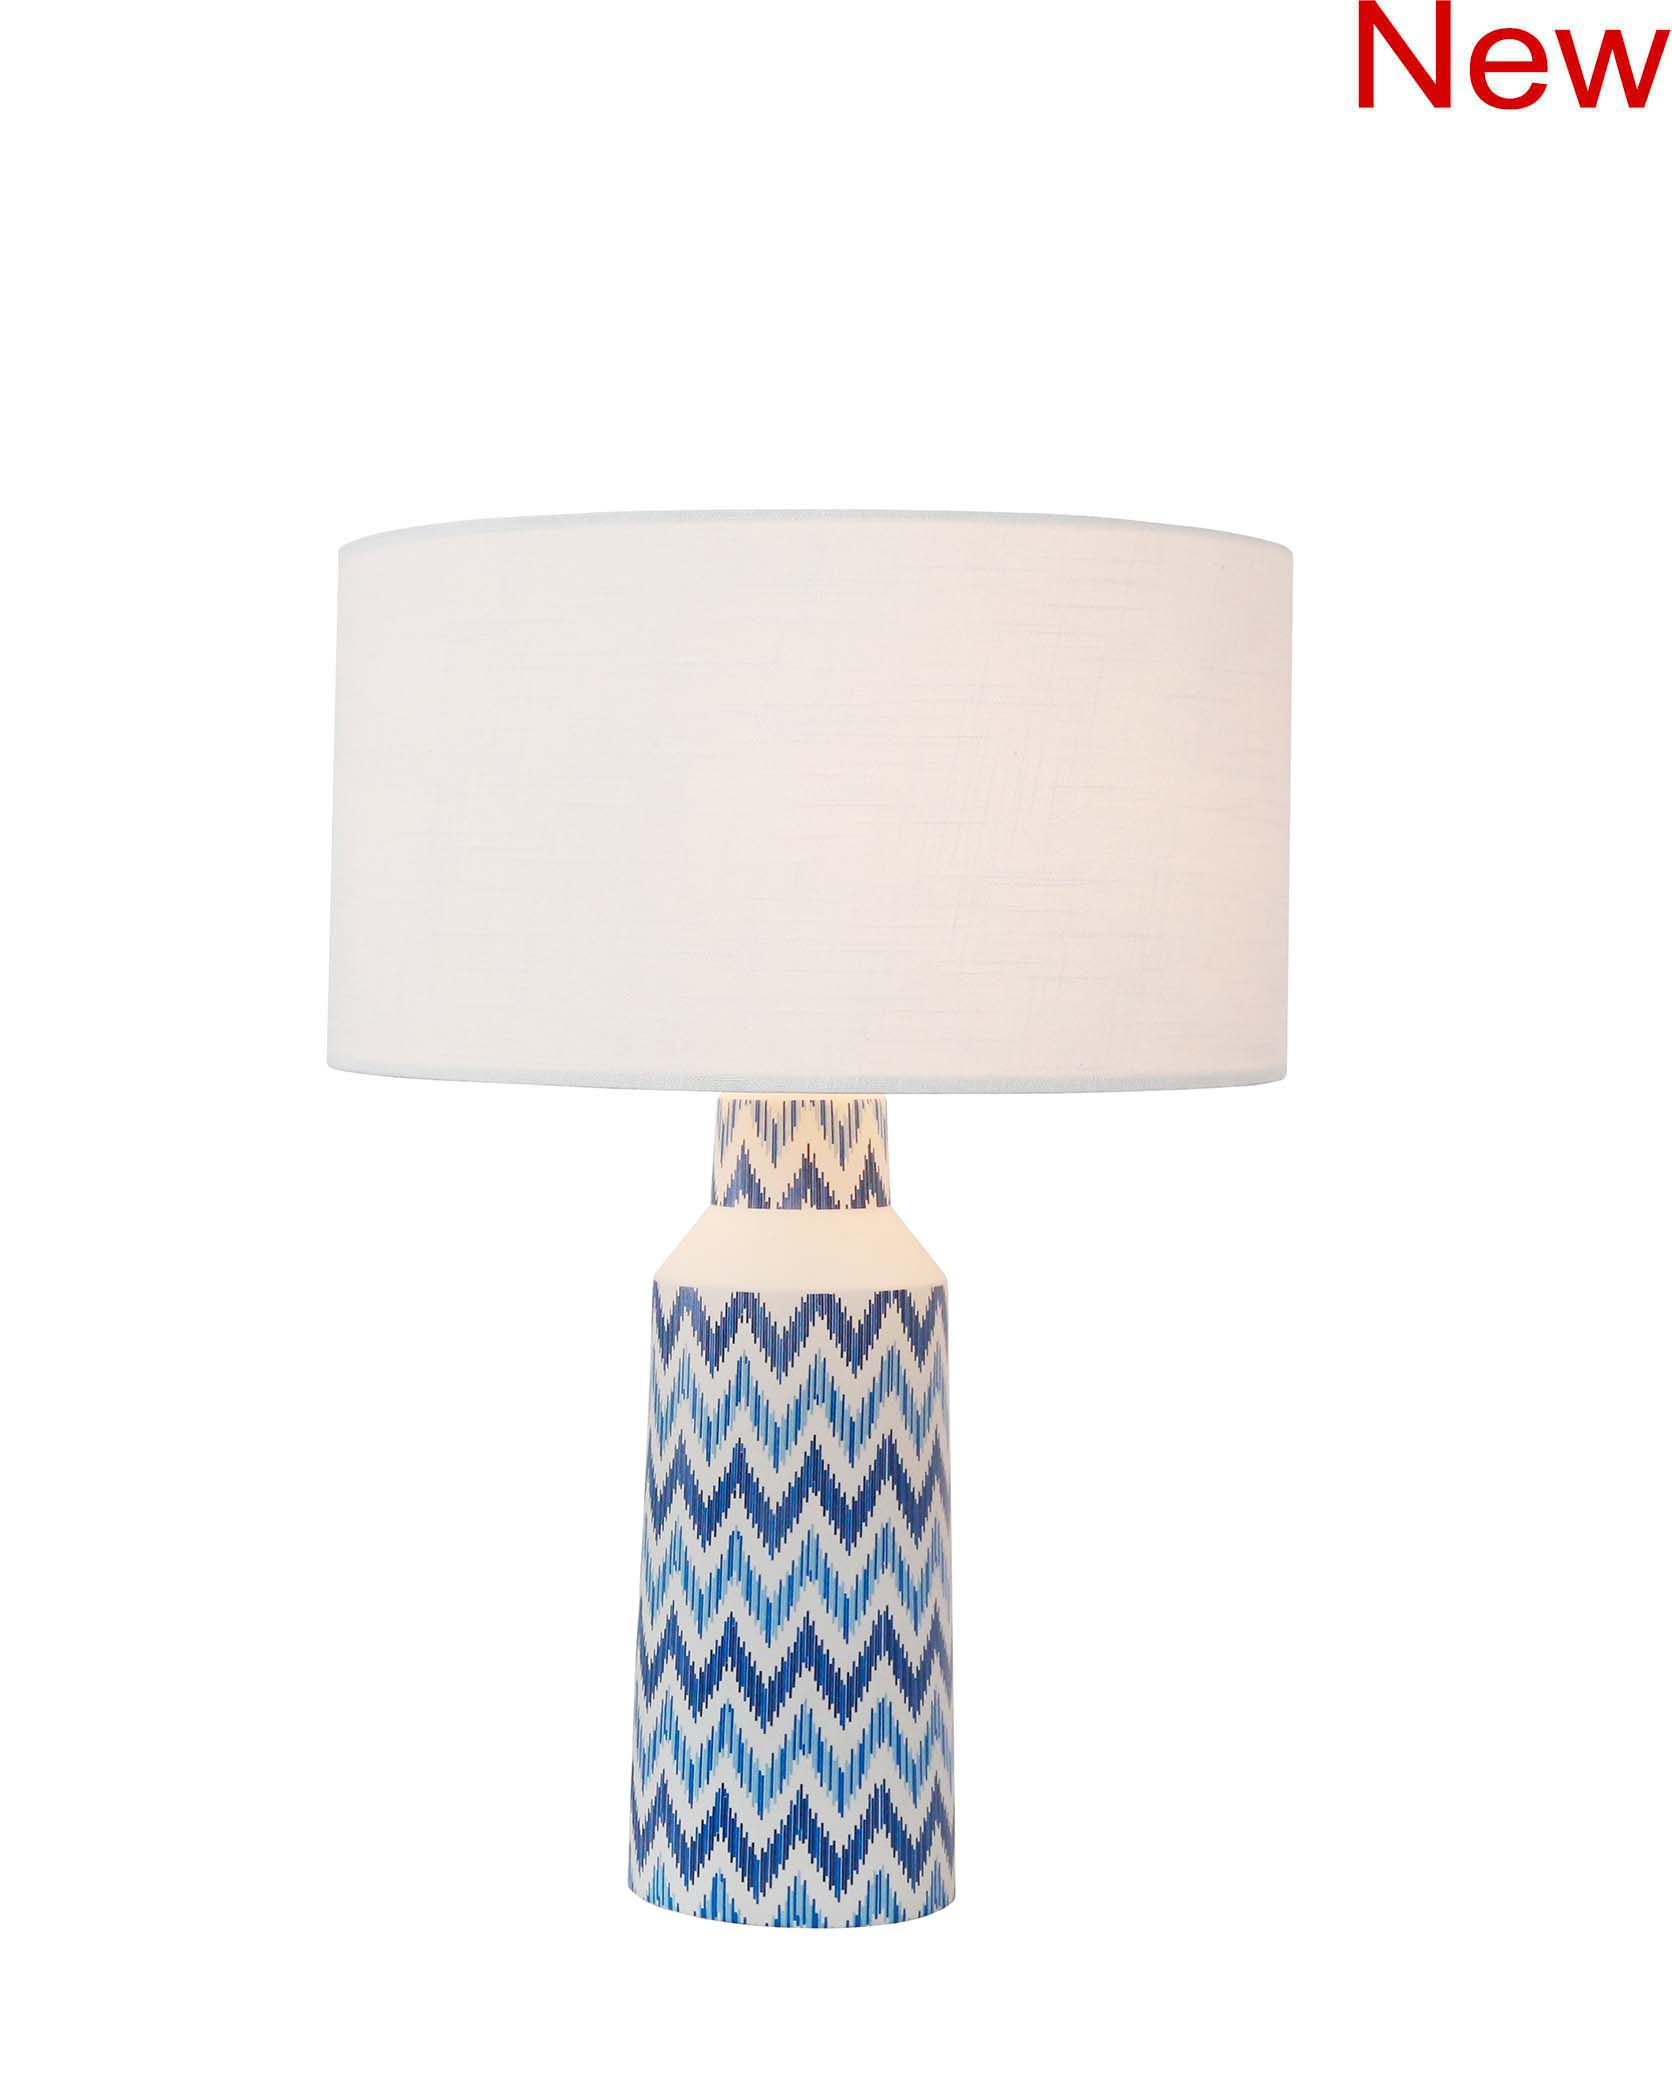 Blue wave table lamp product photo #3